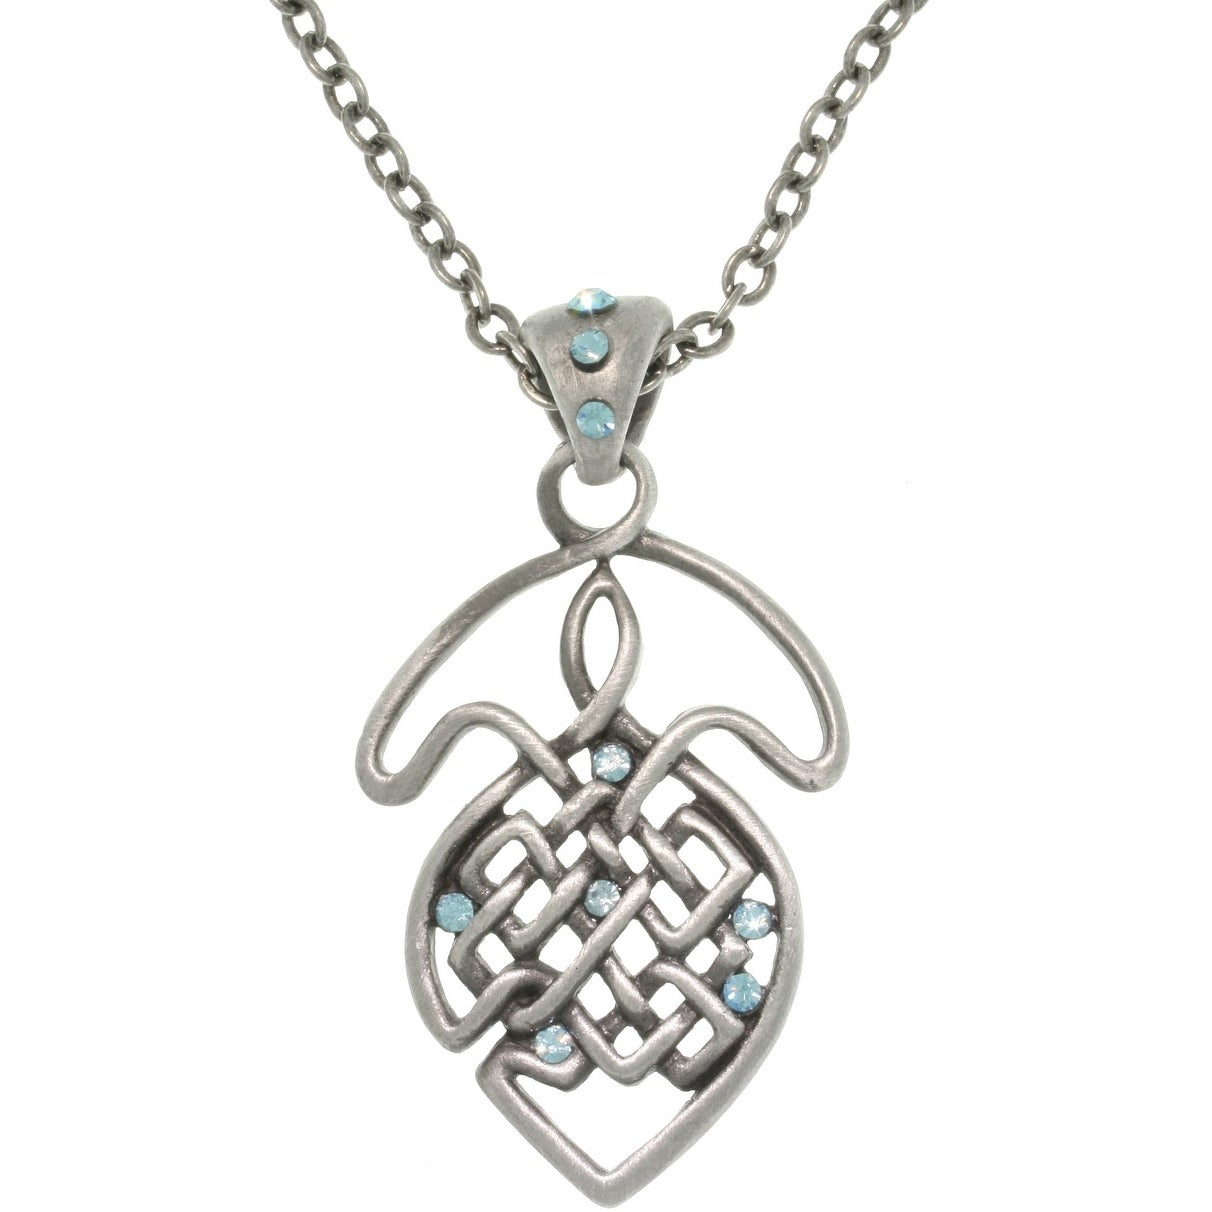 necklace silver pendants sterling knot initial chain pendant with in celtic w cz pattern necklaces